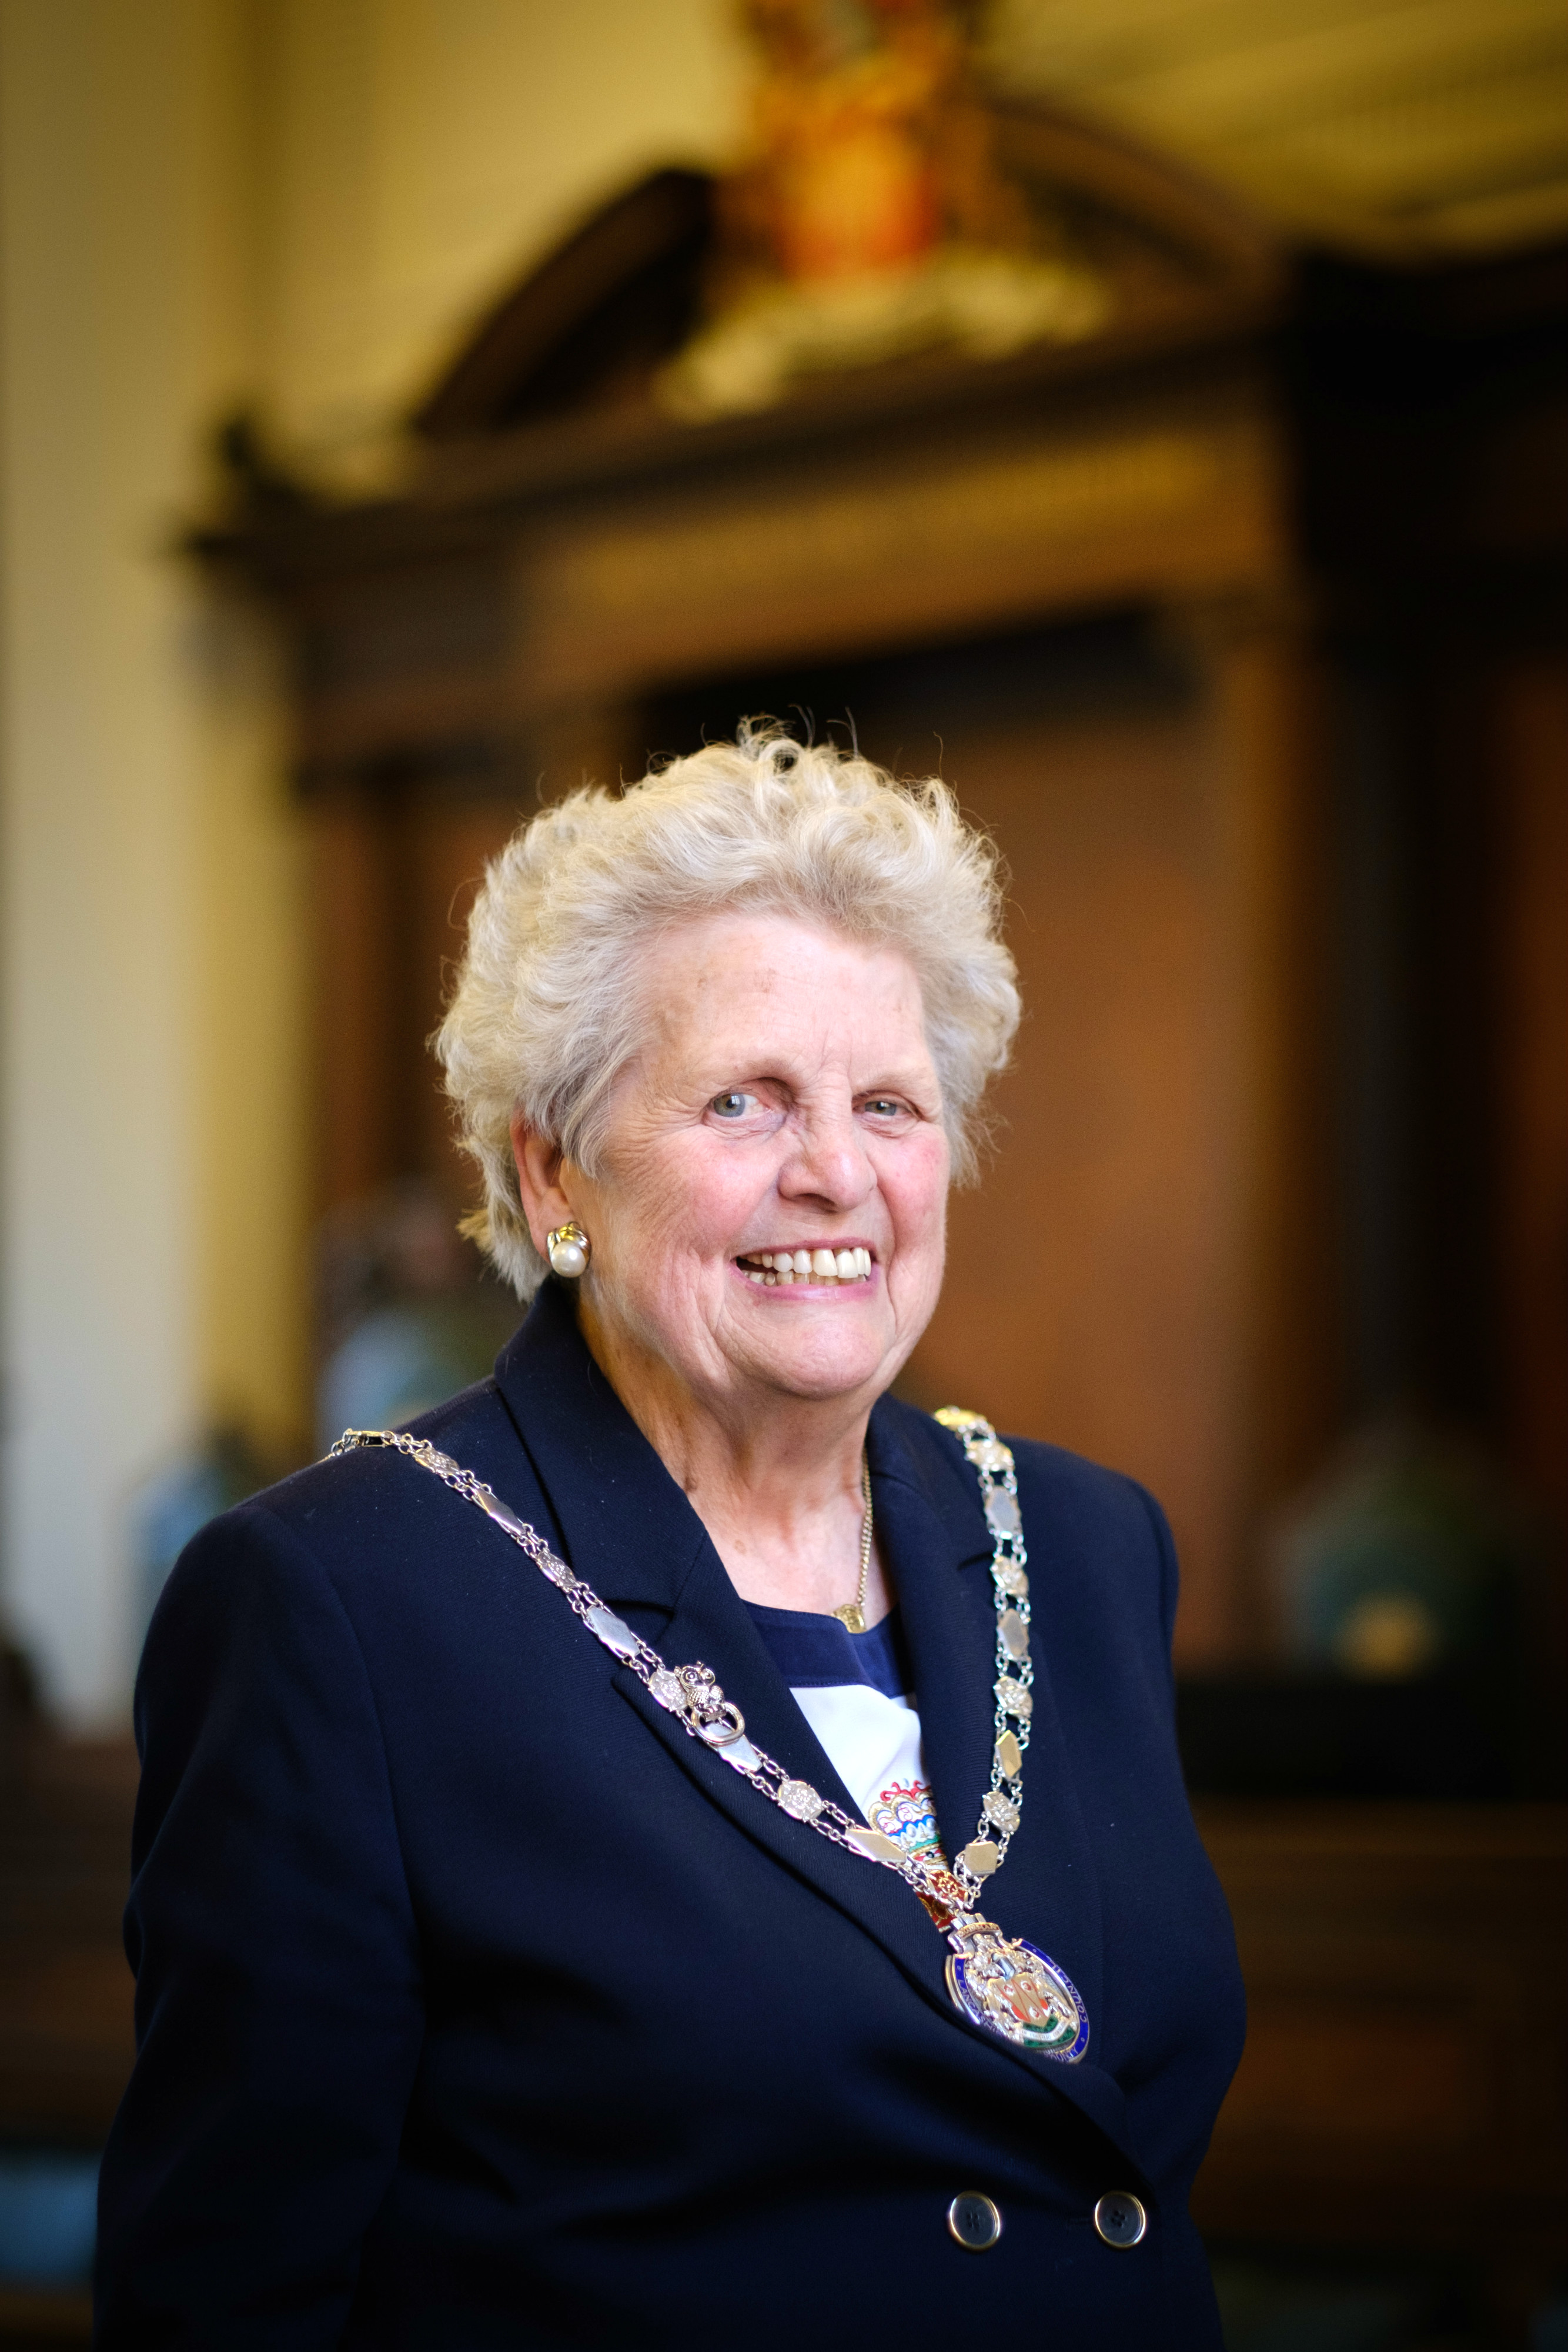 , Praise for older people in our county, Skem News - The Top Source for Skelmersdale News